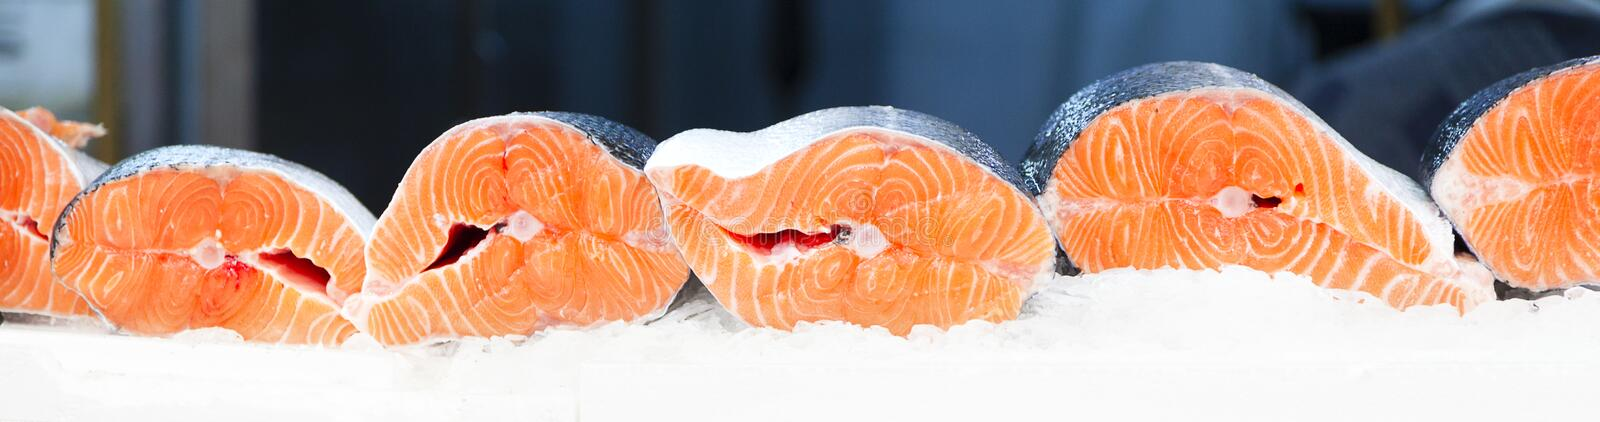 Download Fresh Fish For Sale Stock Images - Image: 37514384